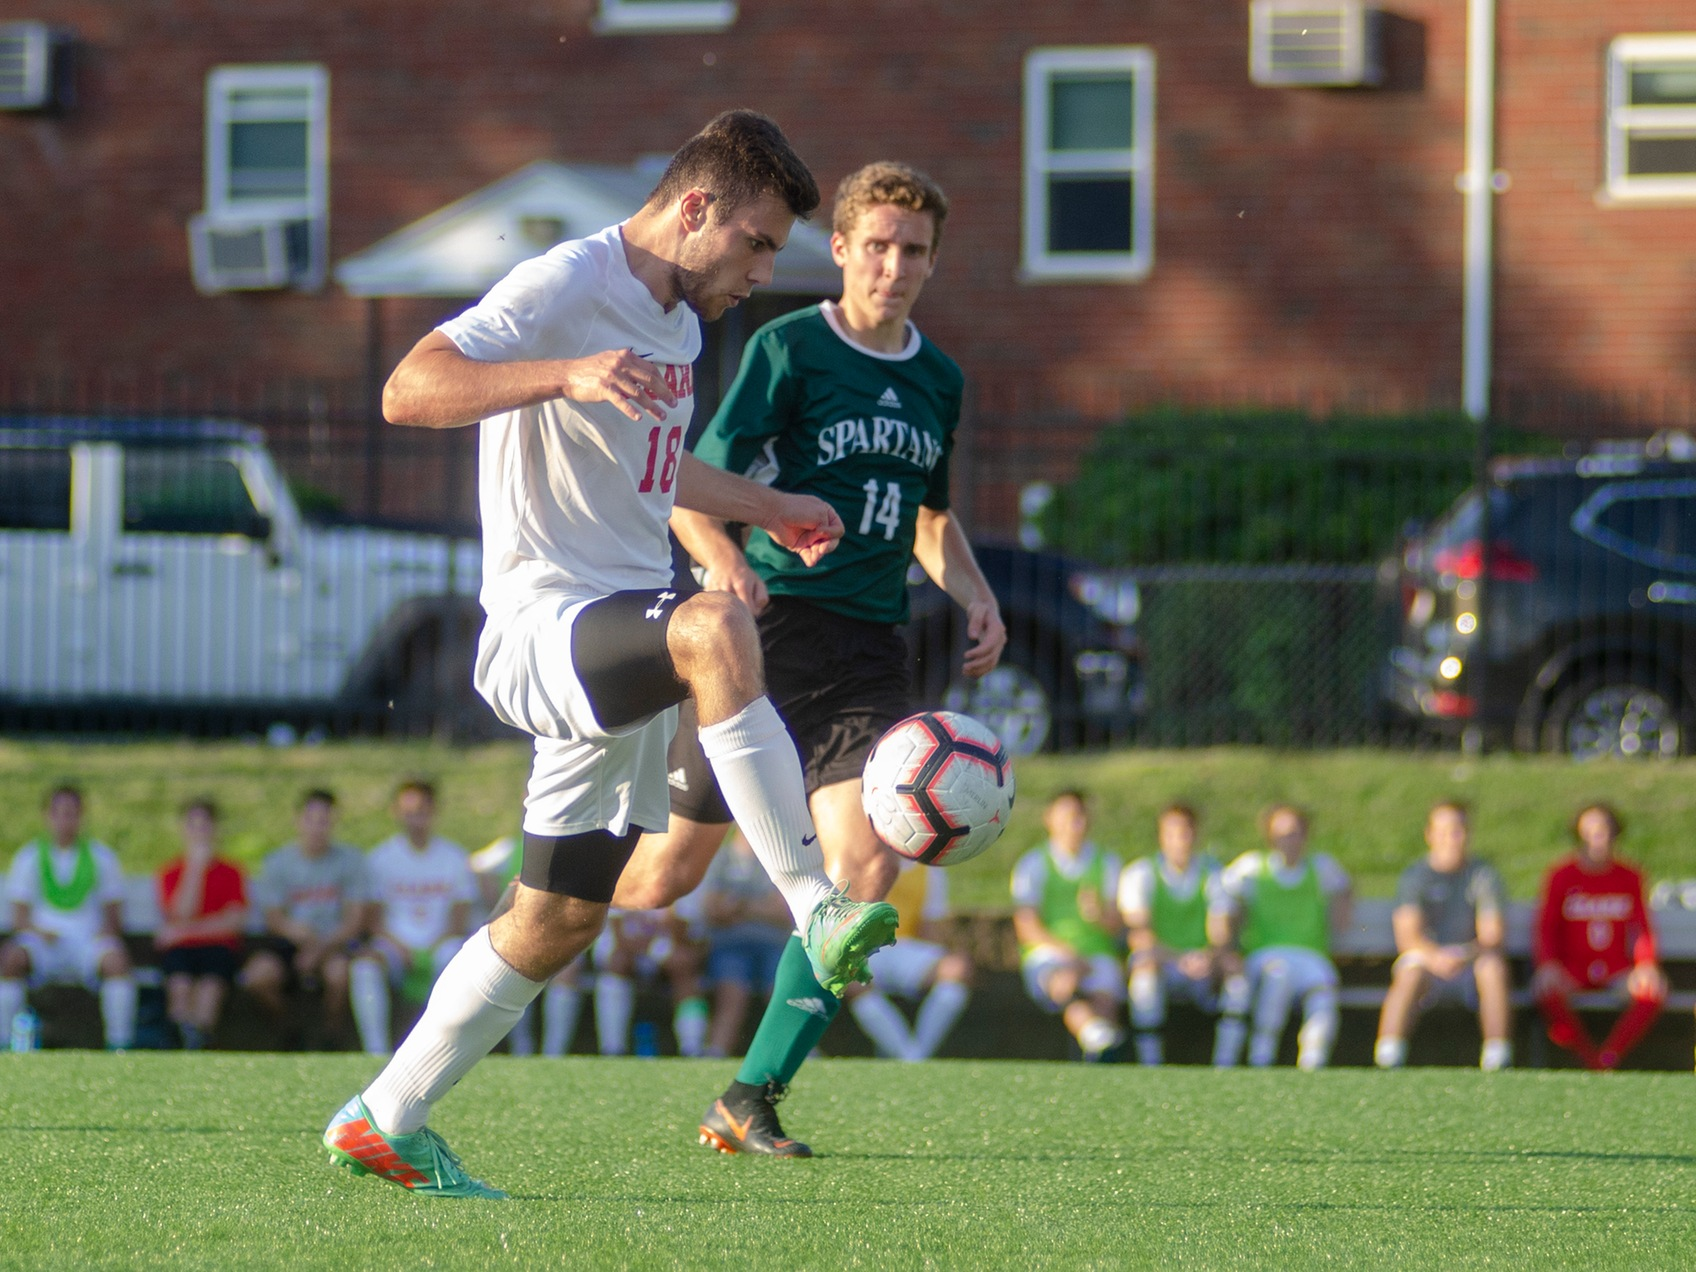 Cougars top Roger Williams at Home